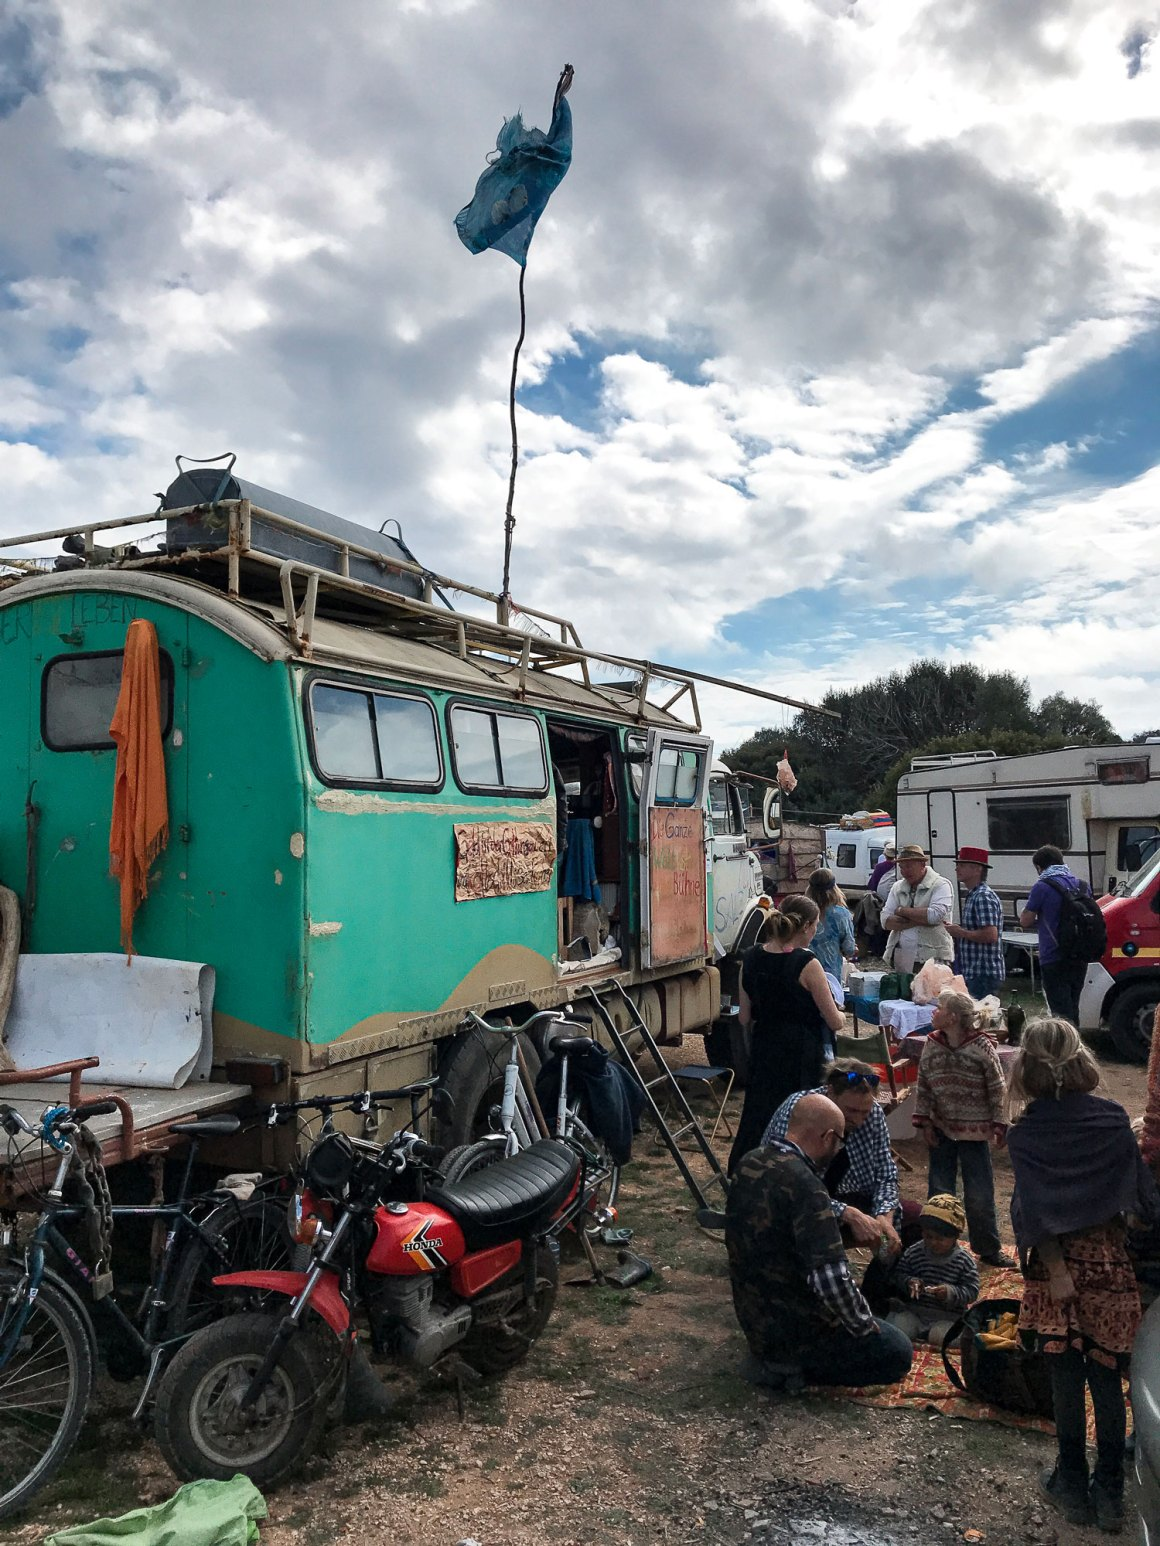 people at a flea market with green camper van and a motocycle